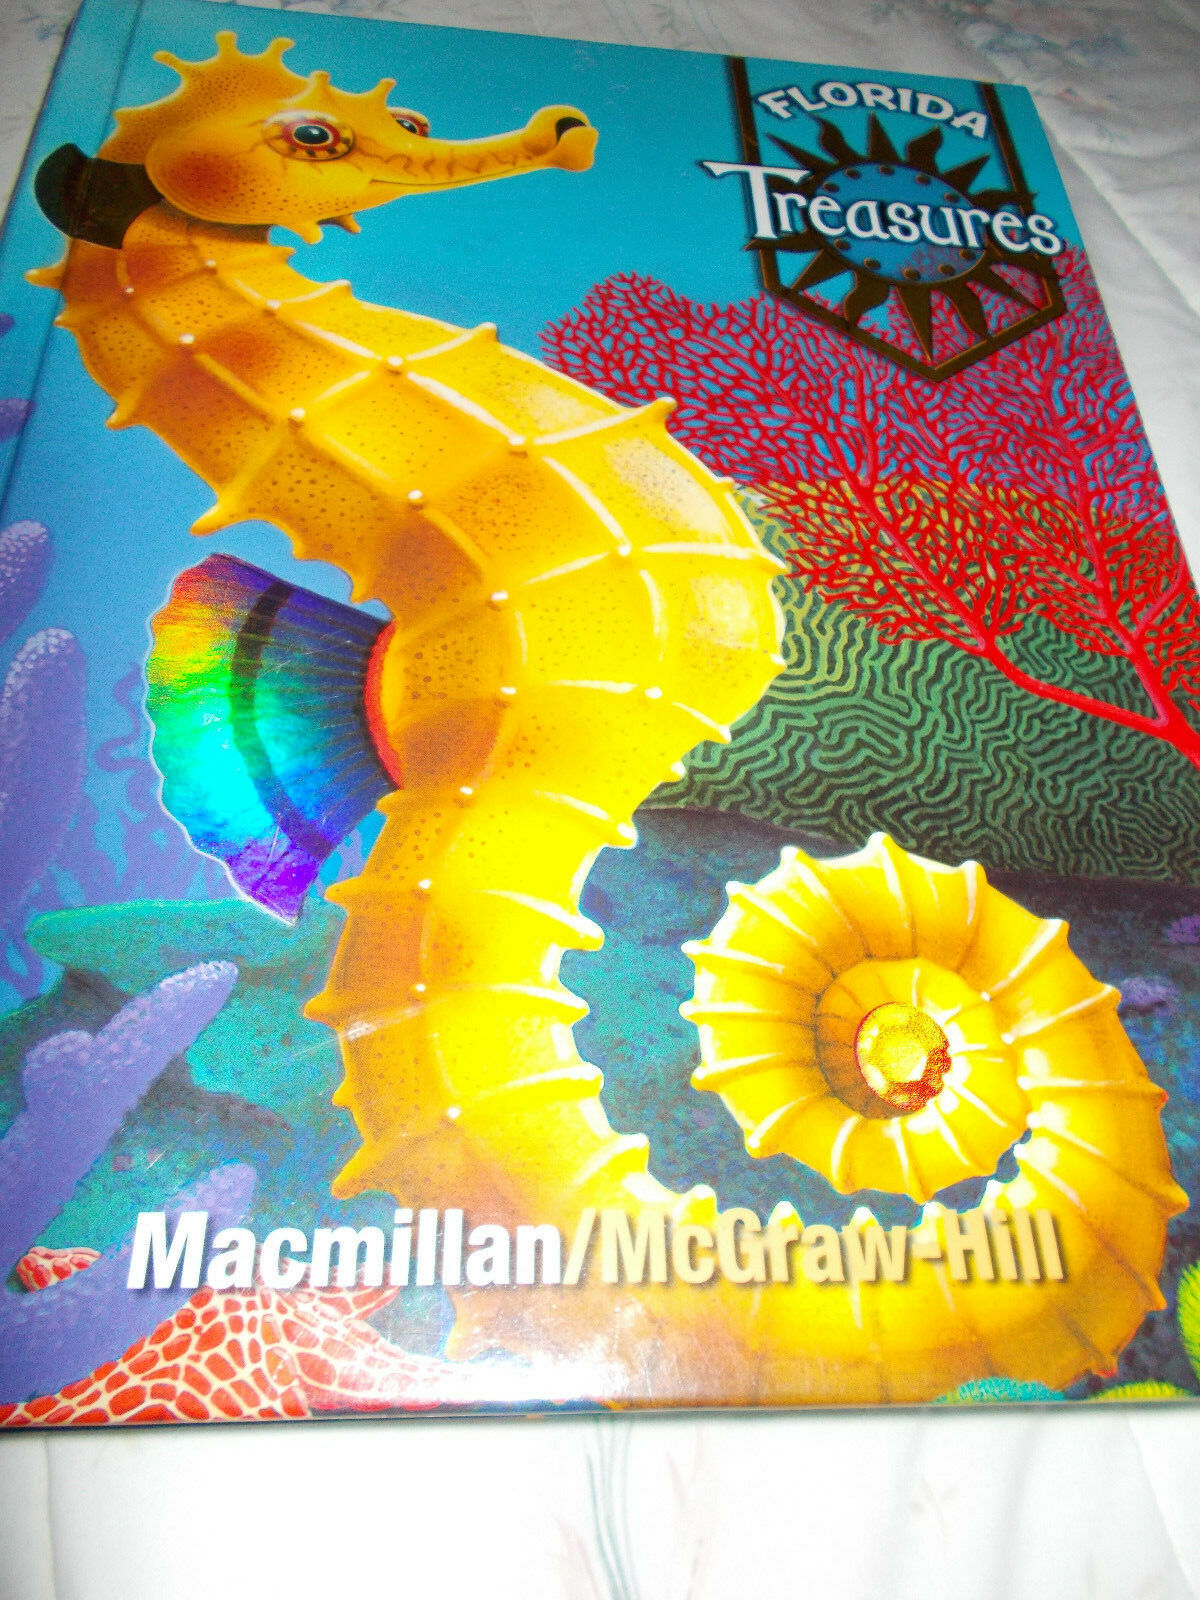 Macmillanmcgraw hill florida treasures 21 reading language atrs 1 of 6 see more fandeluxe Images